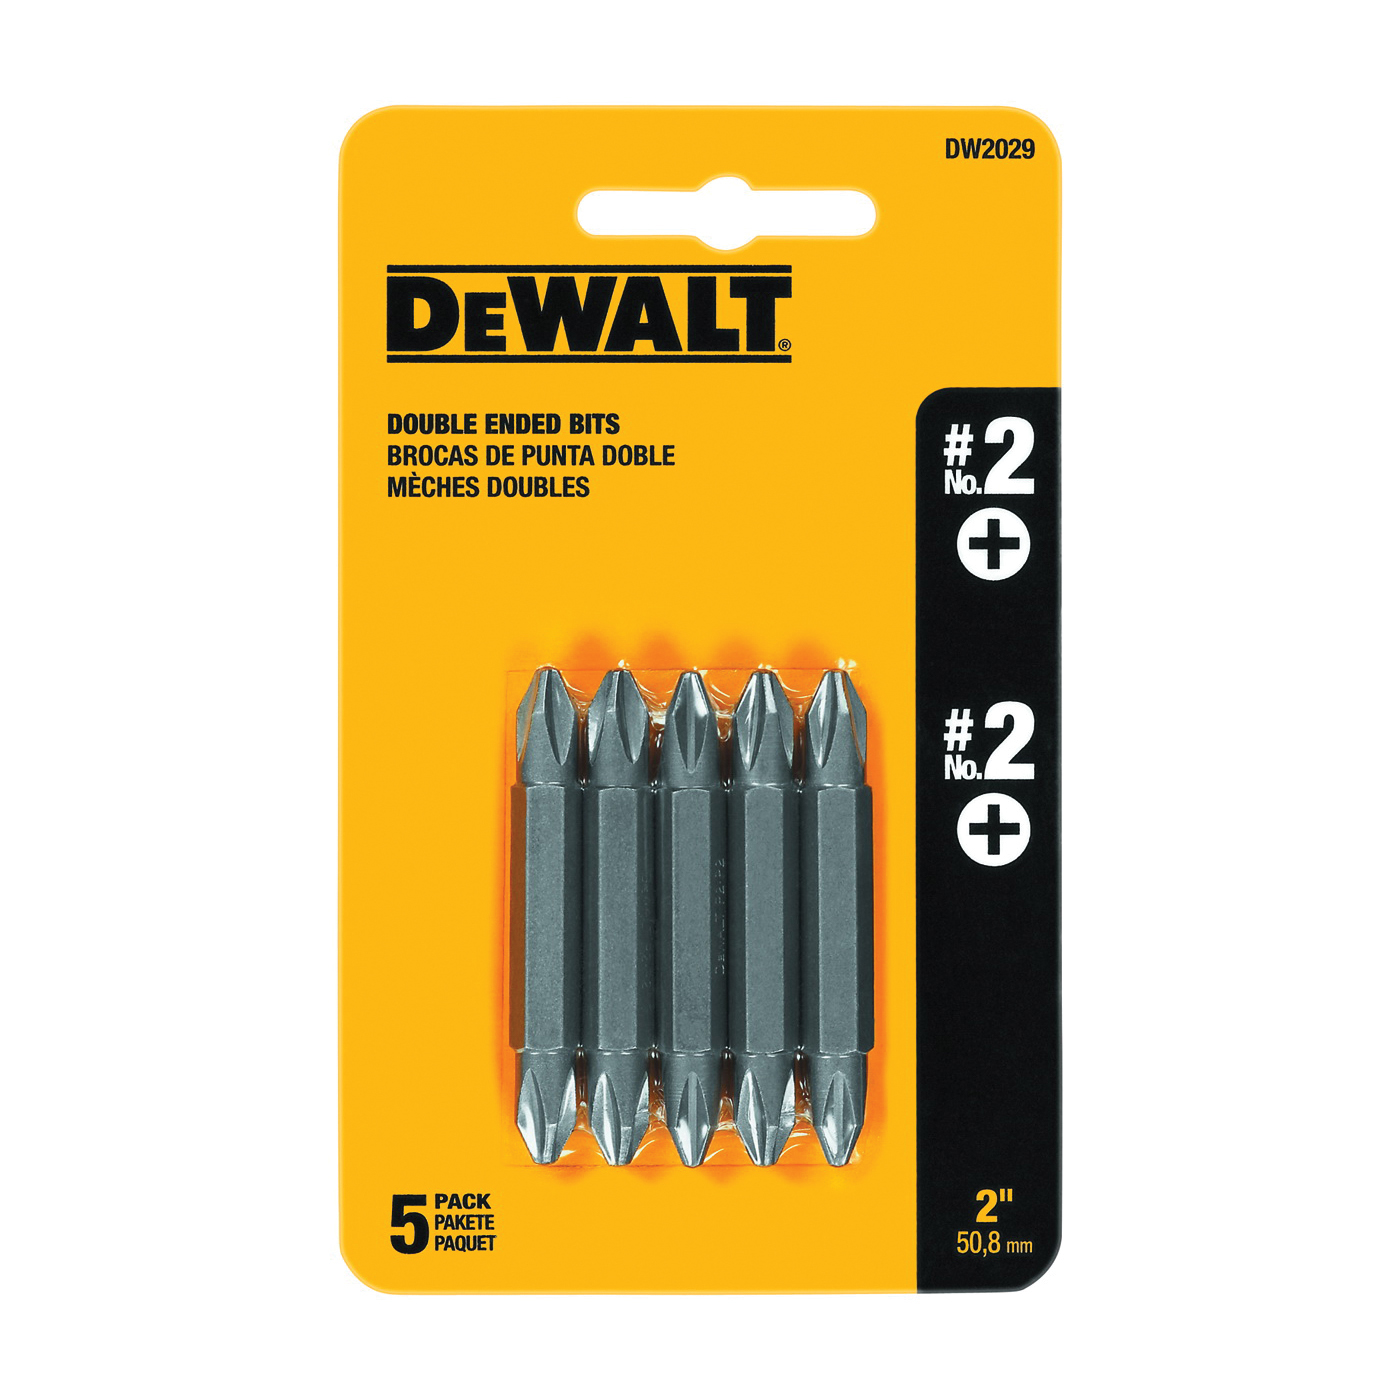 Picture of DeWALT DW2029 Screwdriver Bit, #2 Drive, Phillips Drive, 1/4 in Shank, Hex Shank, 2 in L, Steel